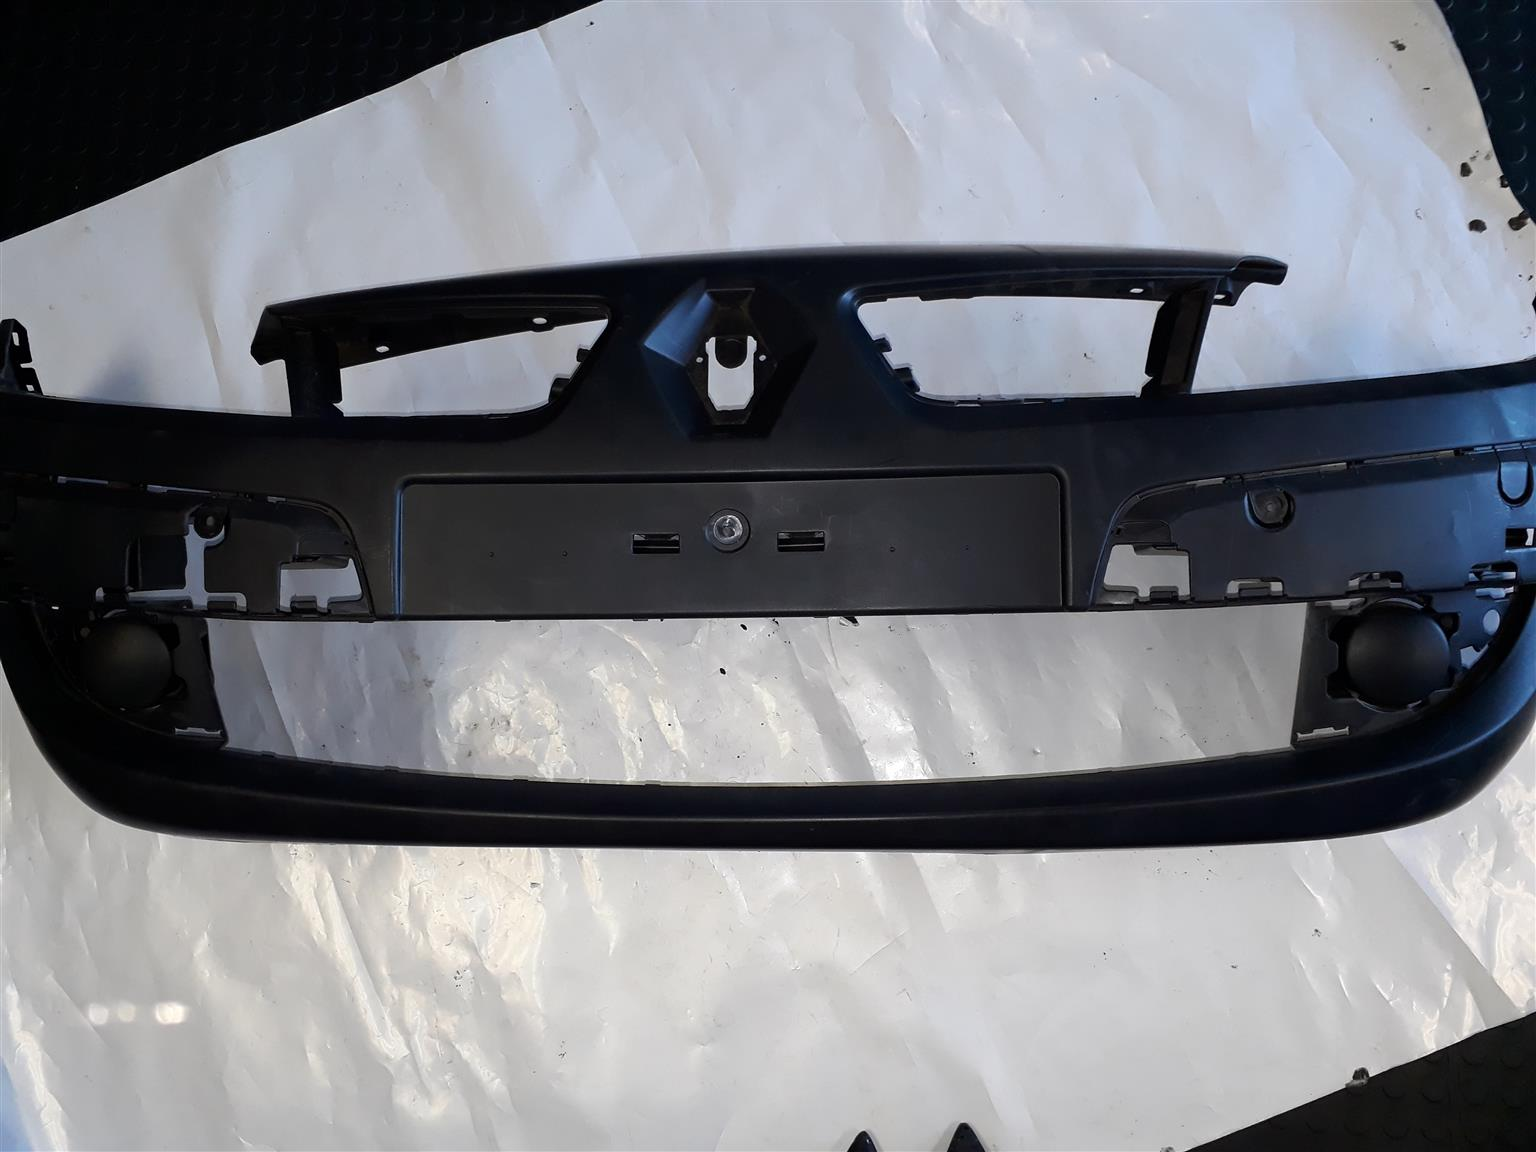 SCENIC 2 FRONT BUMPER RENAULT FOR SALE